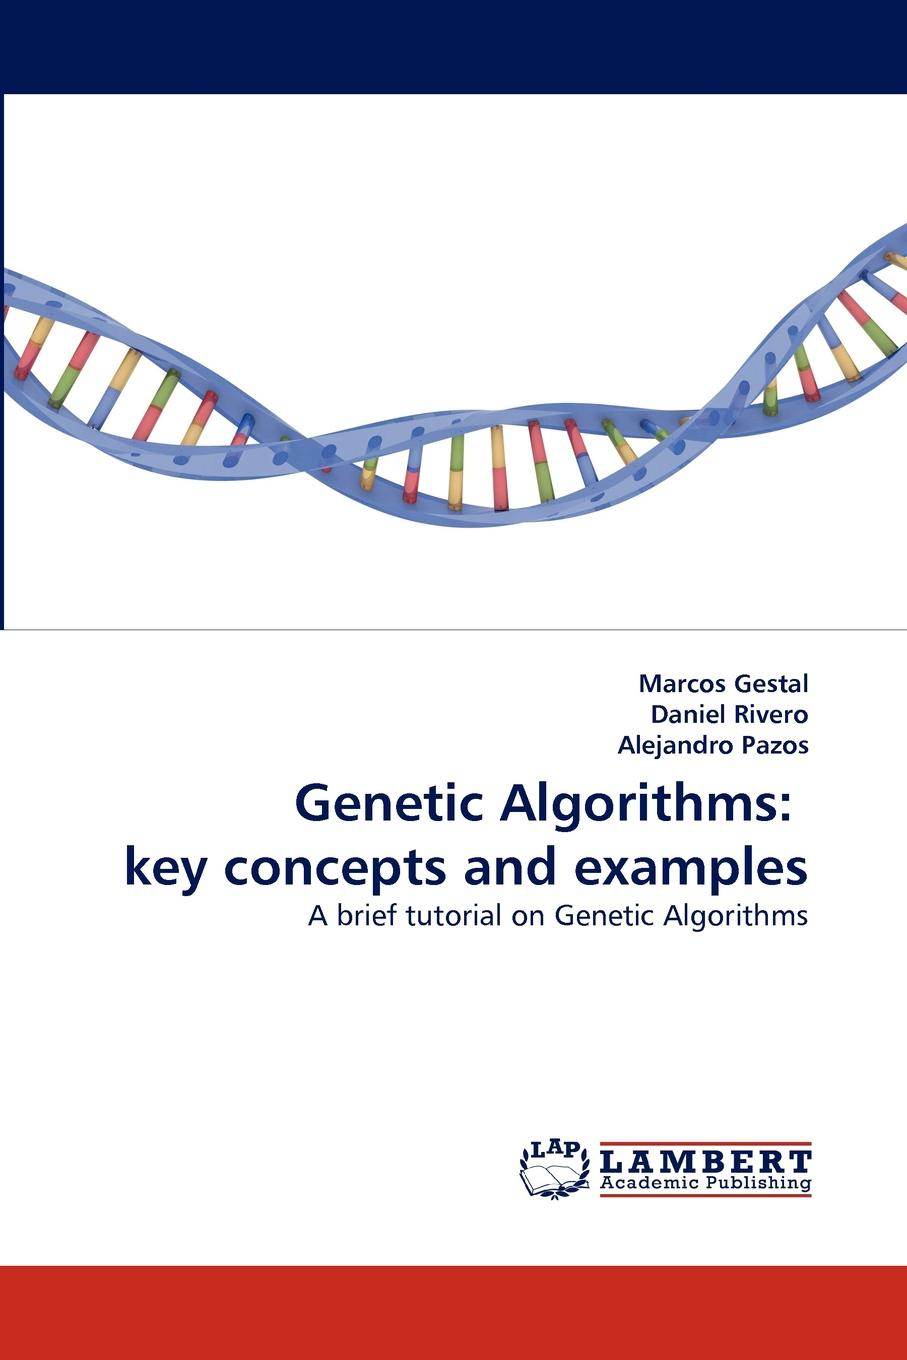 Marcos Gestal, Daniel Rivero, Alejandro Pazos Genetic Algorithms. Key Concepts and Examples new archive based evolutionary multi objective algorithms